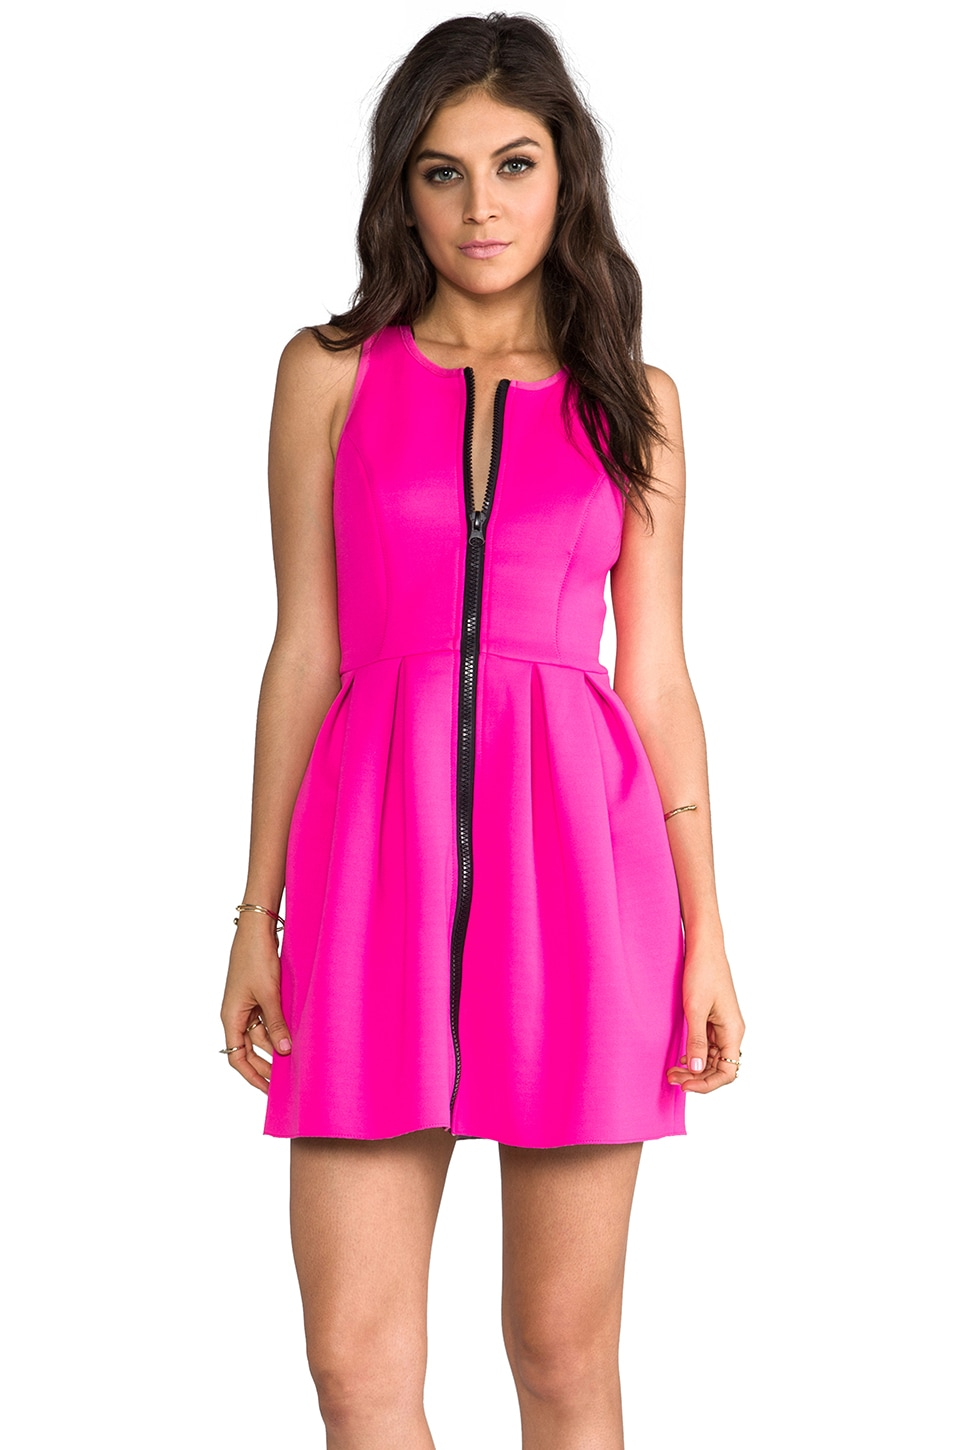 STYLESTALKER Word Dress in Hot Pink